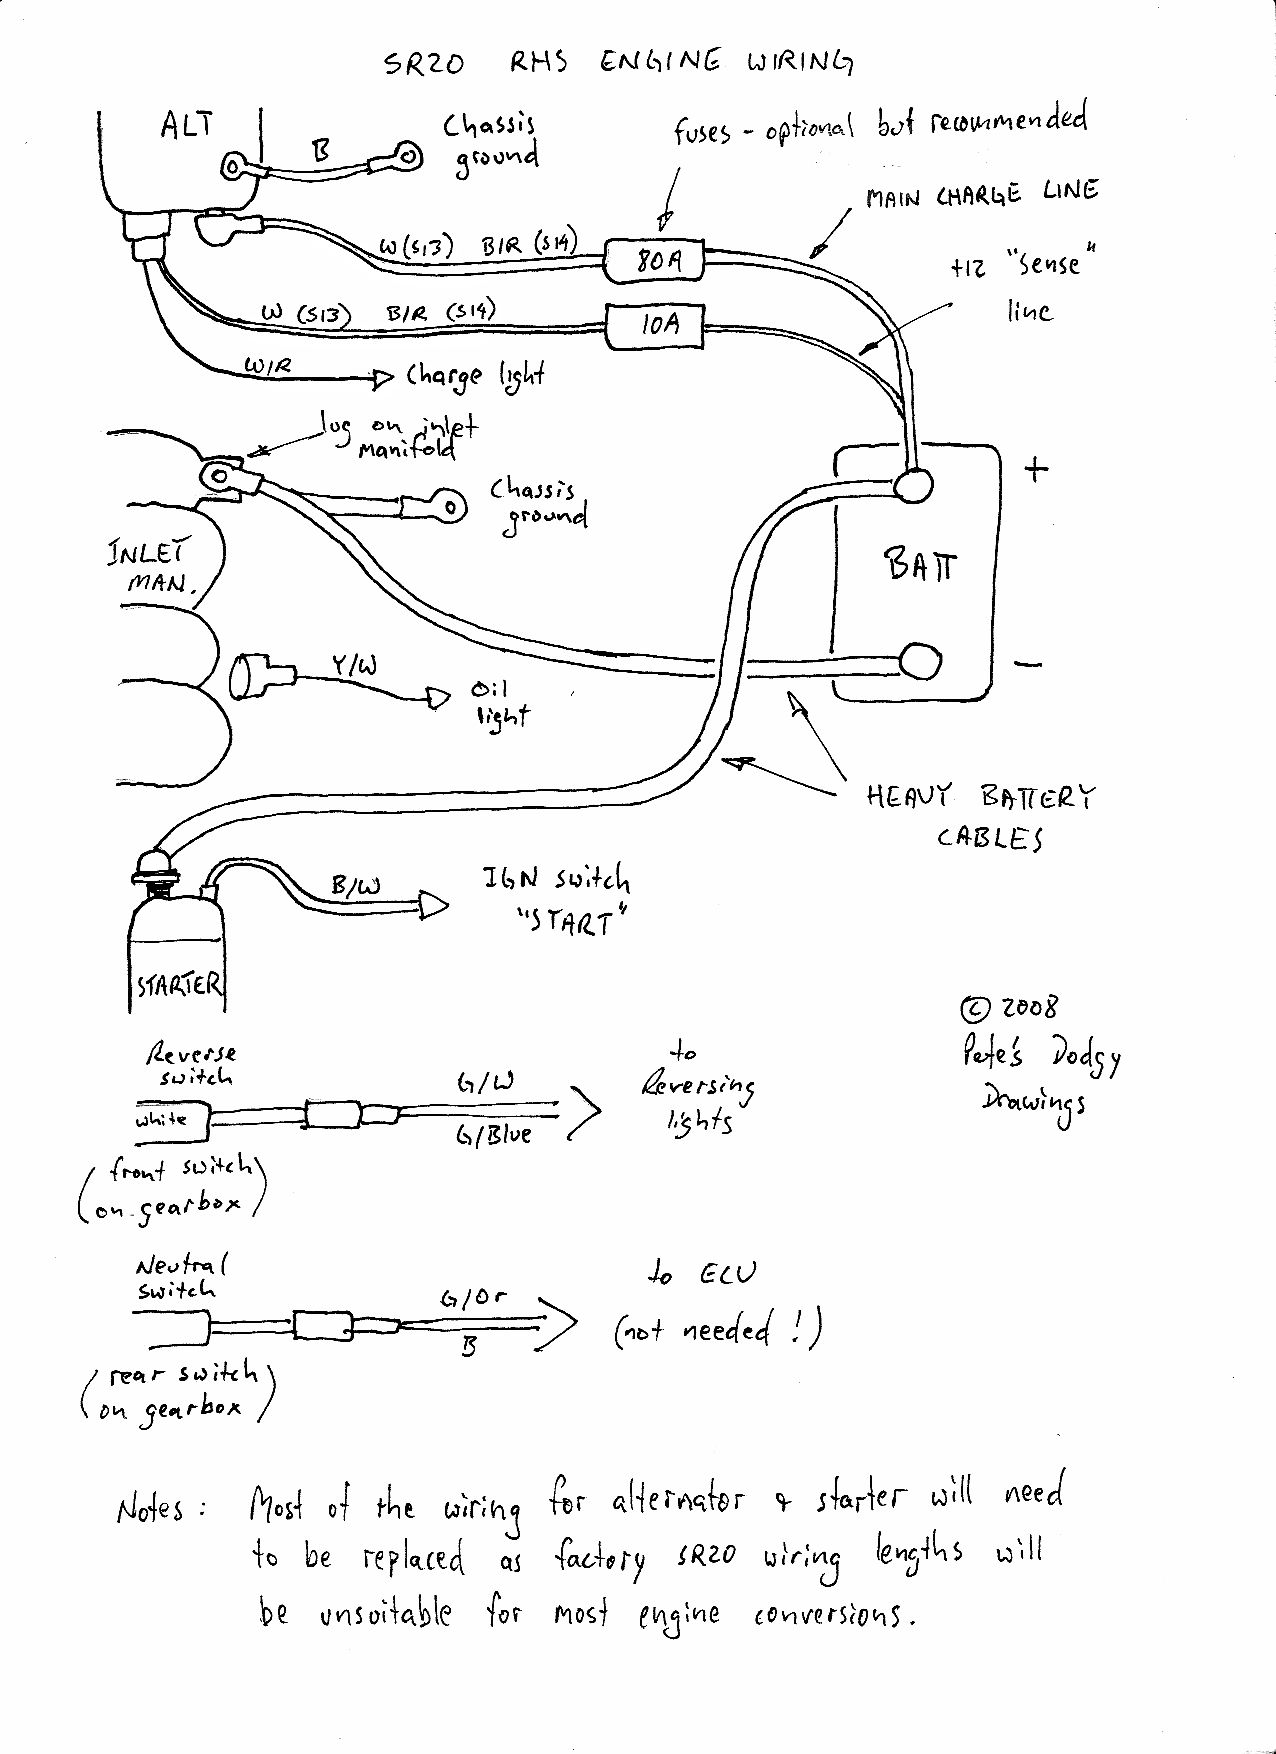 rhs_wiring sr20det alternator starter wiring the 510 realm sr20det starter wiring diagram at edmiracle.co